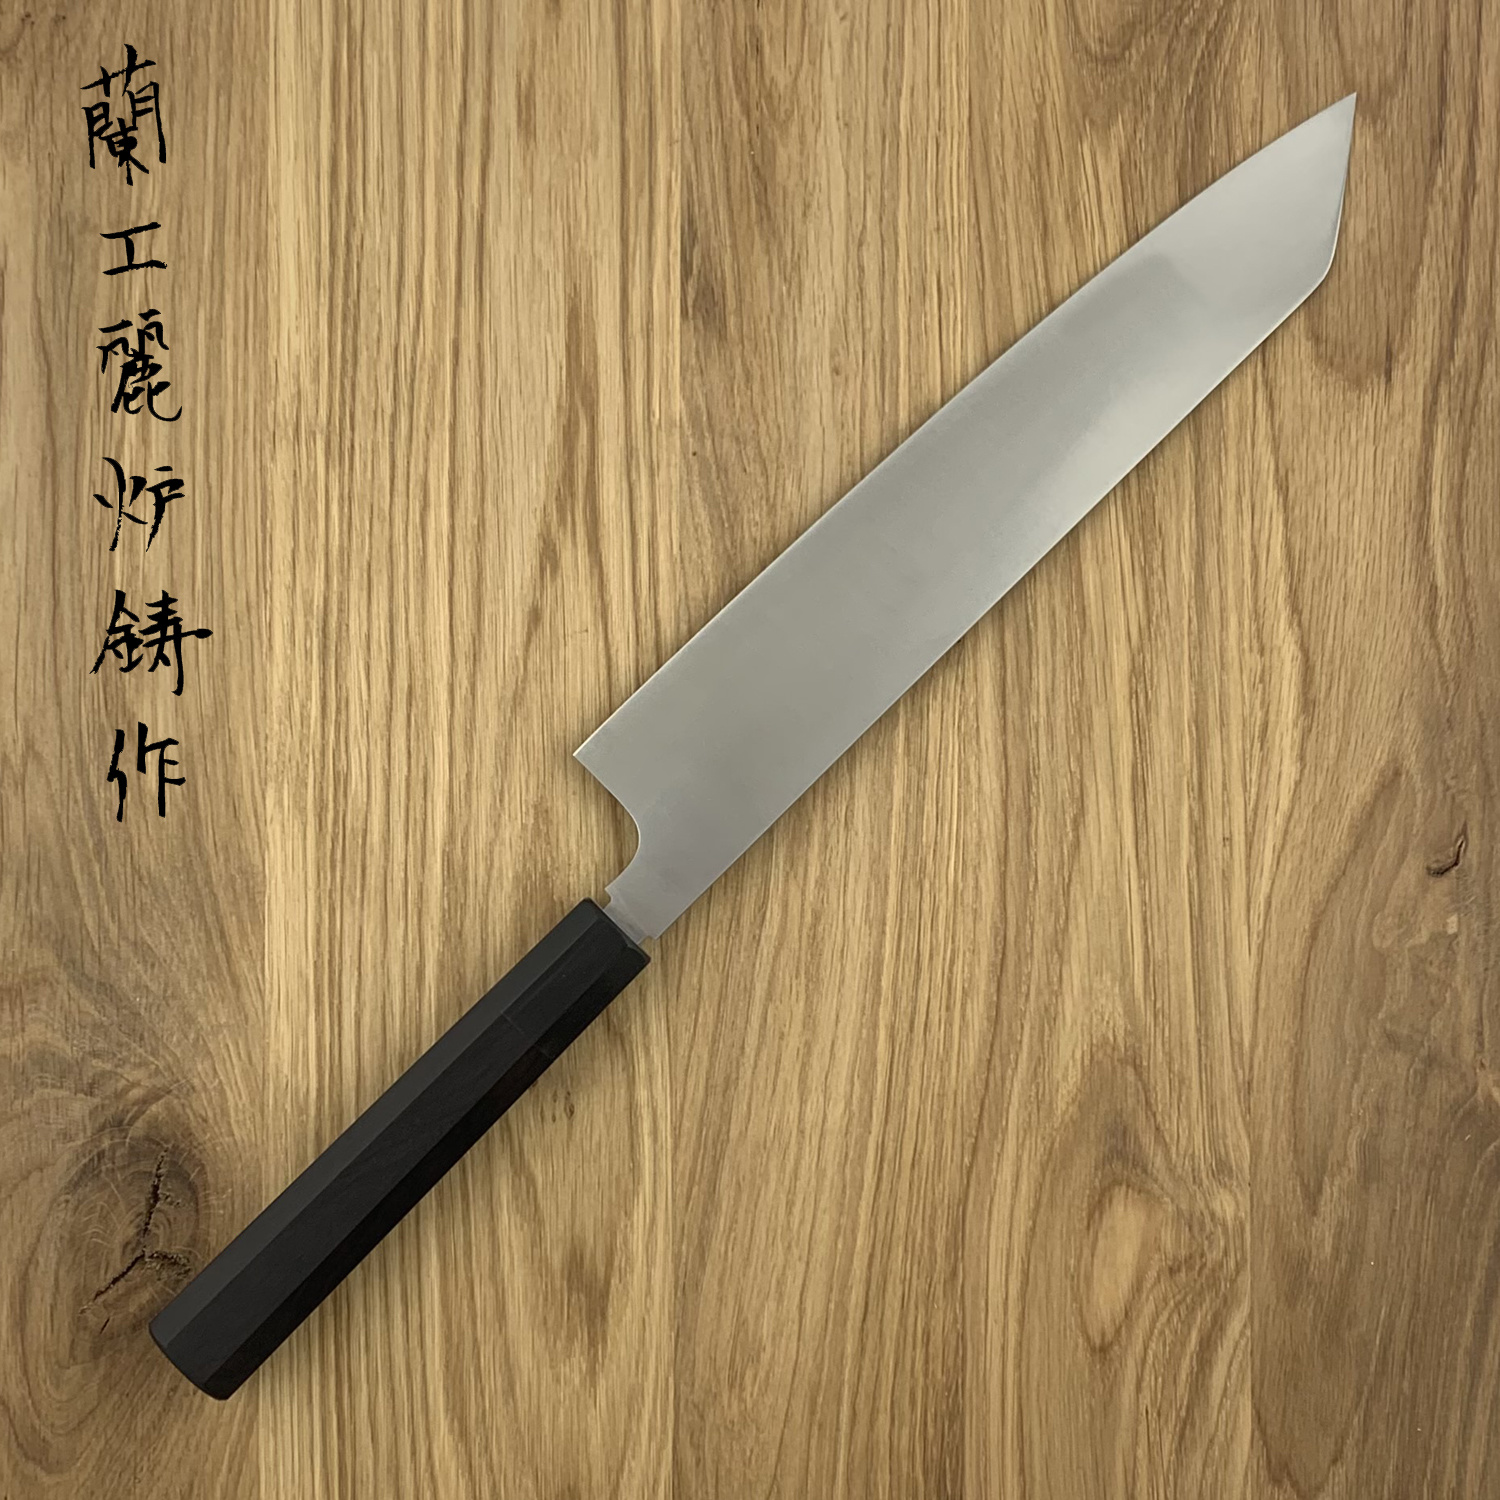 NENOHI double edged Japanese kiritsuke 2.5  mm thick 270 mm octagonal ebony handle